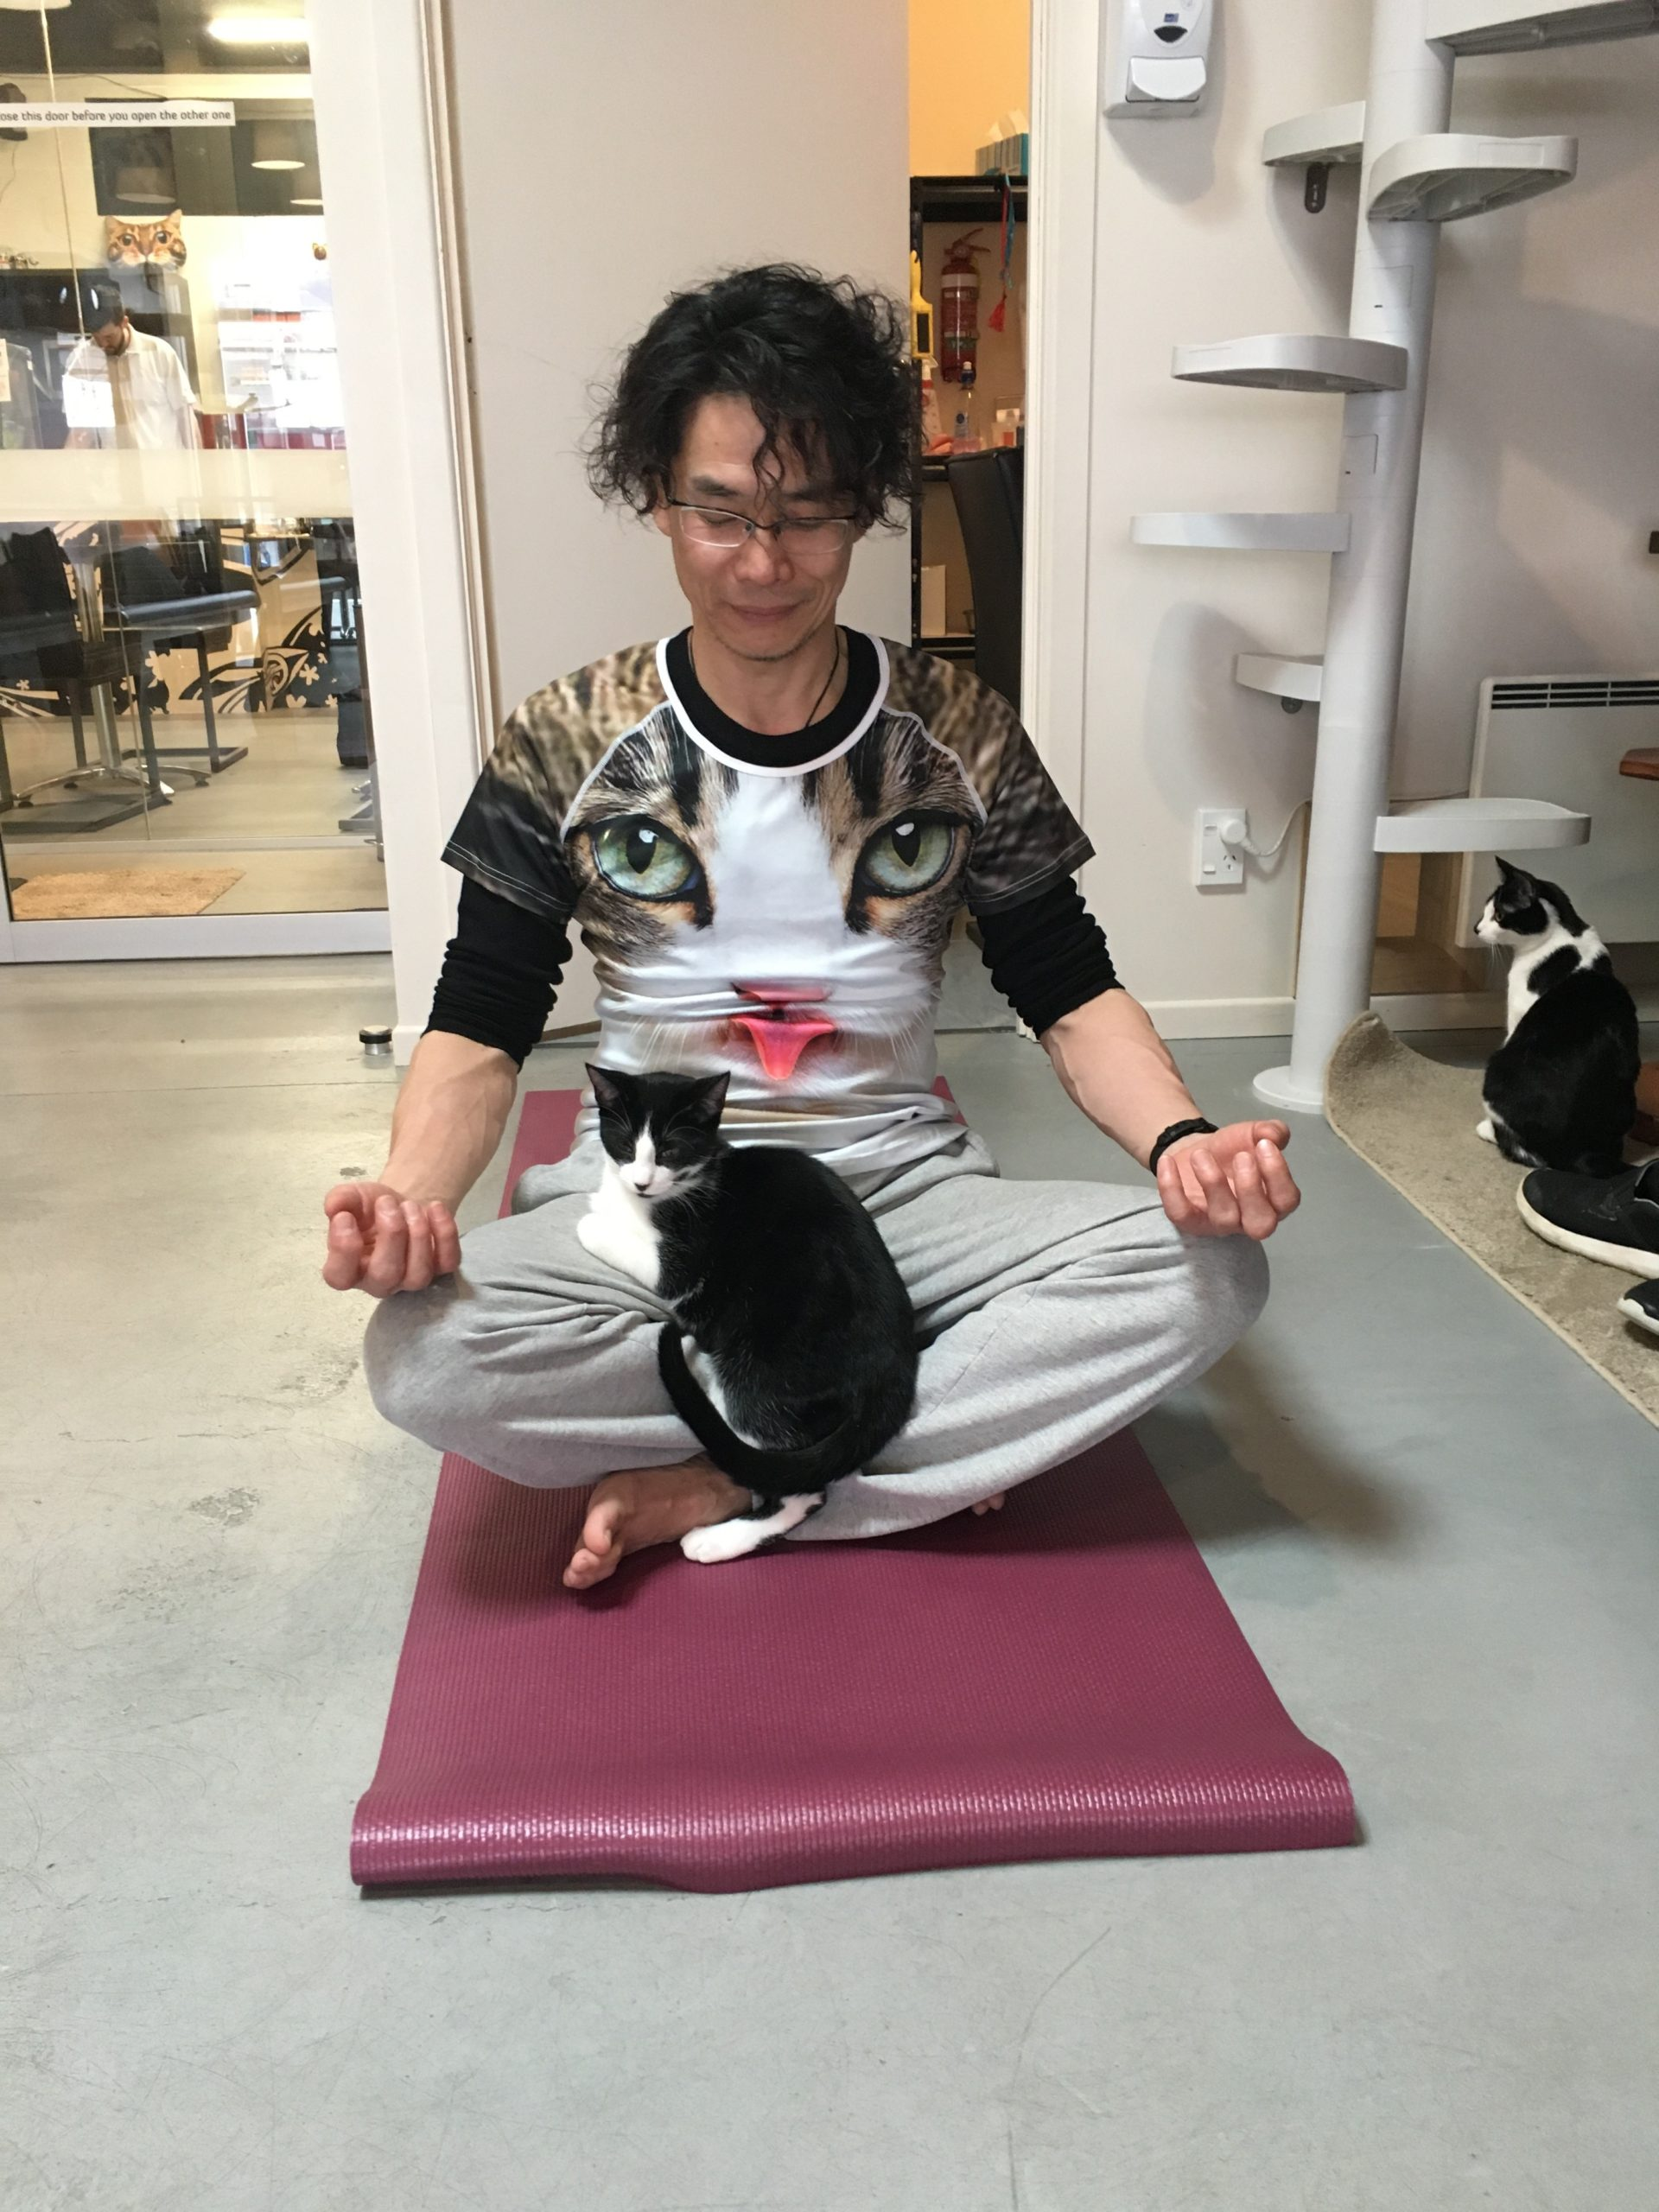 Ken doing yoga with cat on his lap